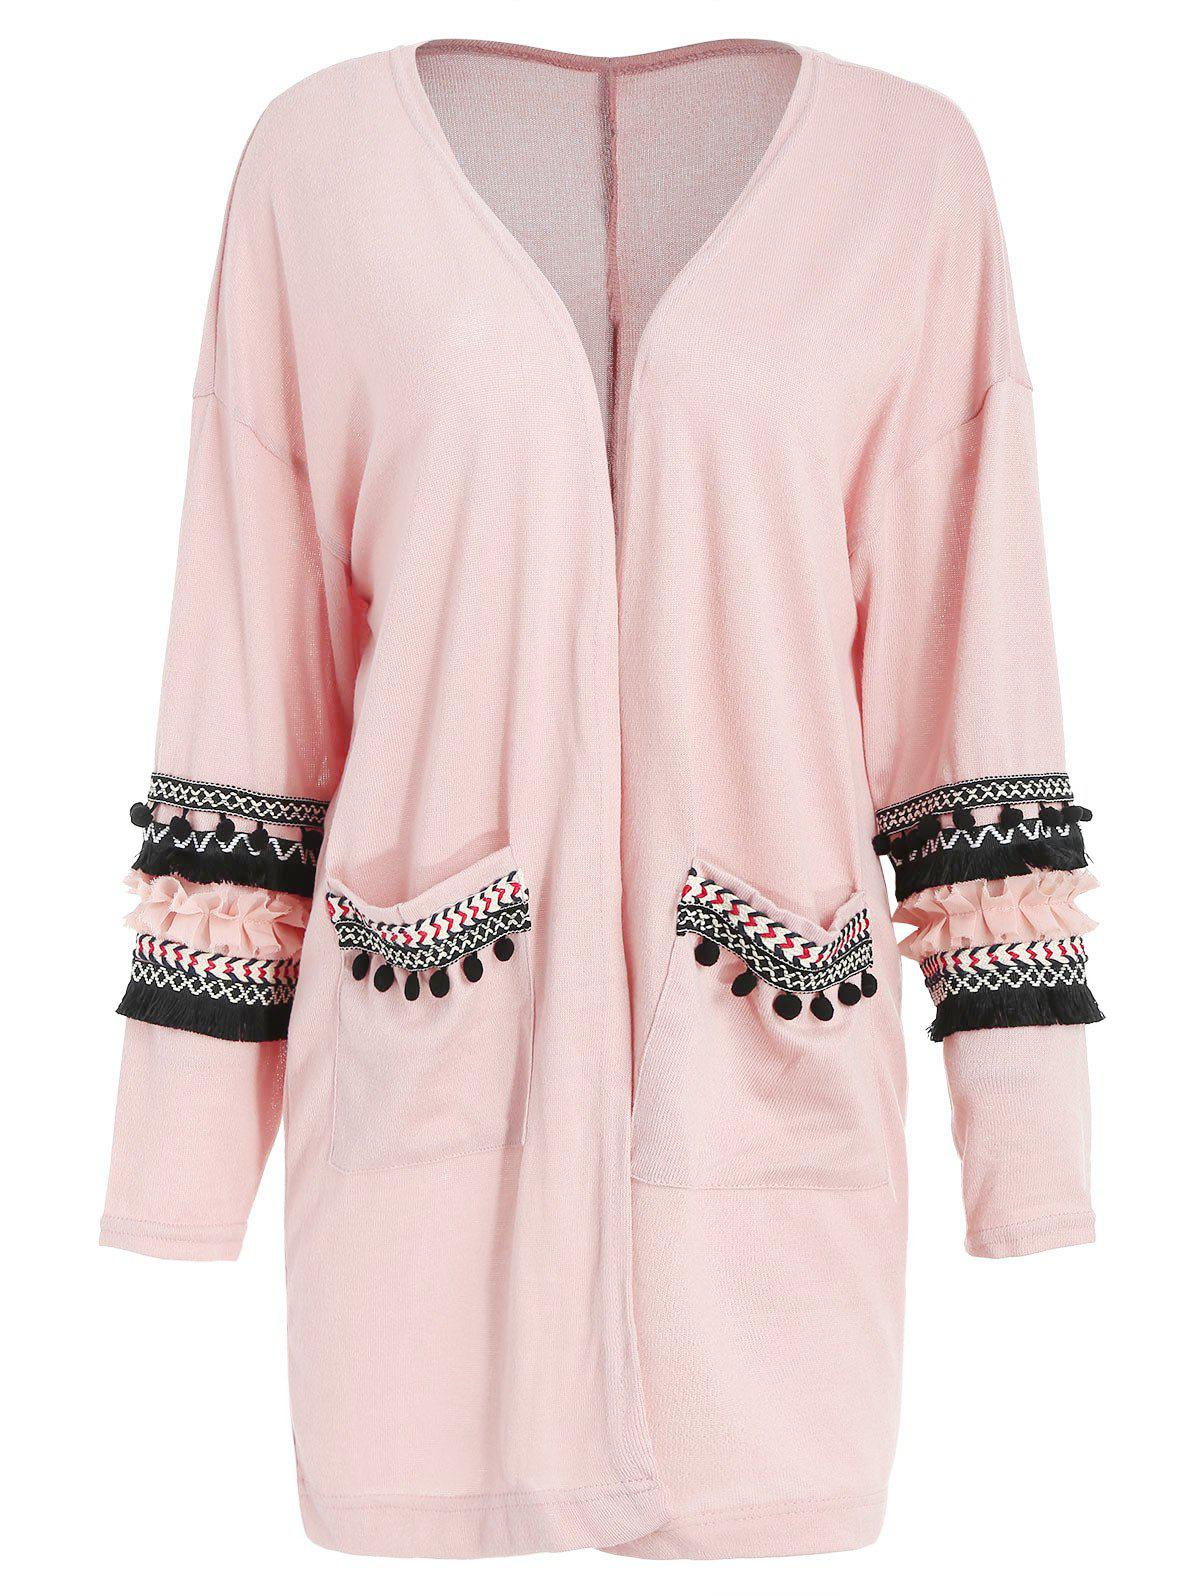 Shop Embroidered Longline Pockets Cardigan